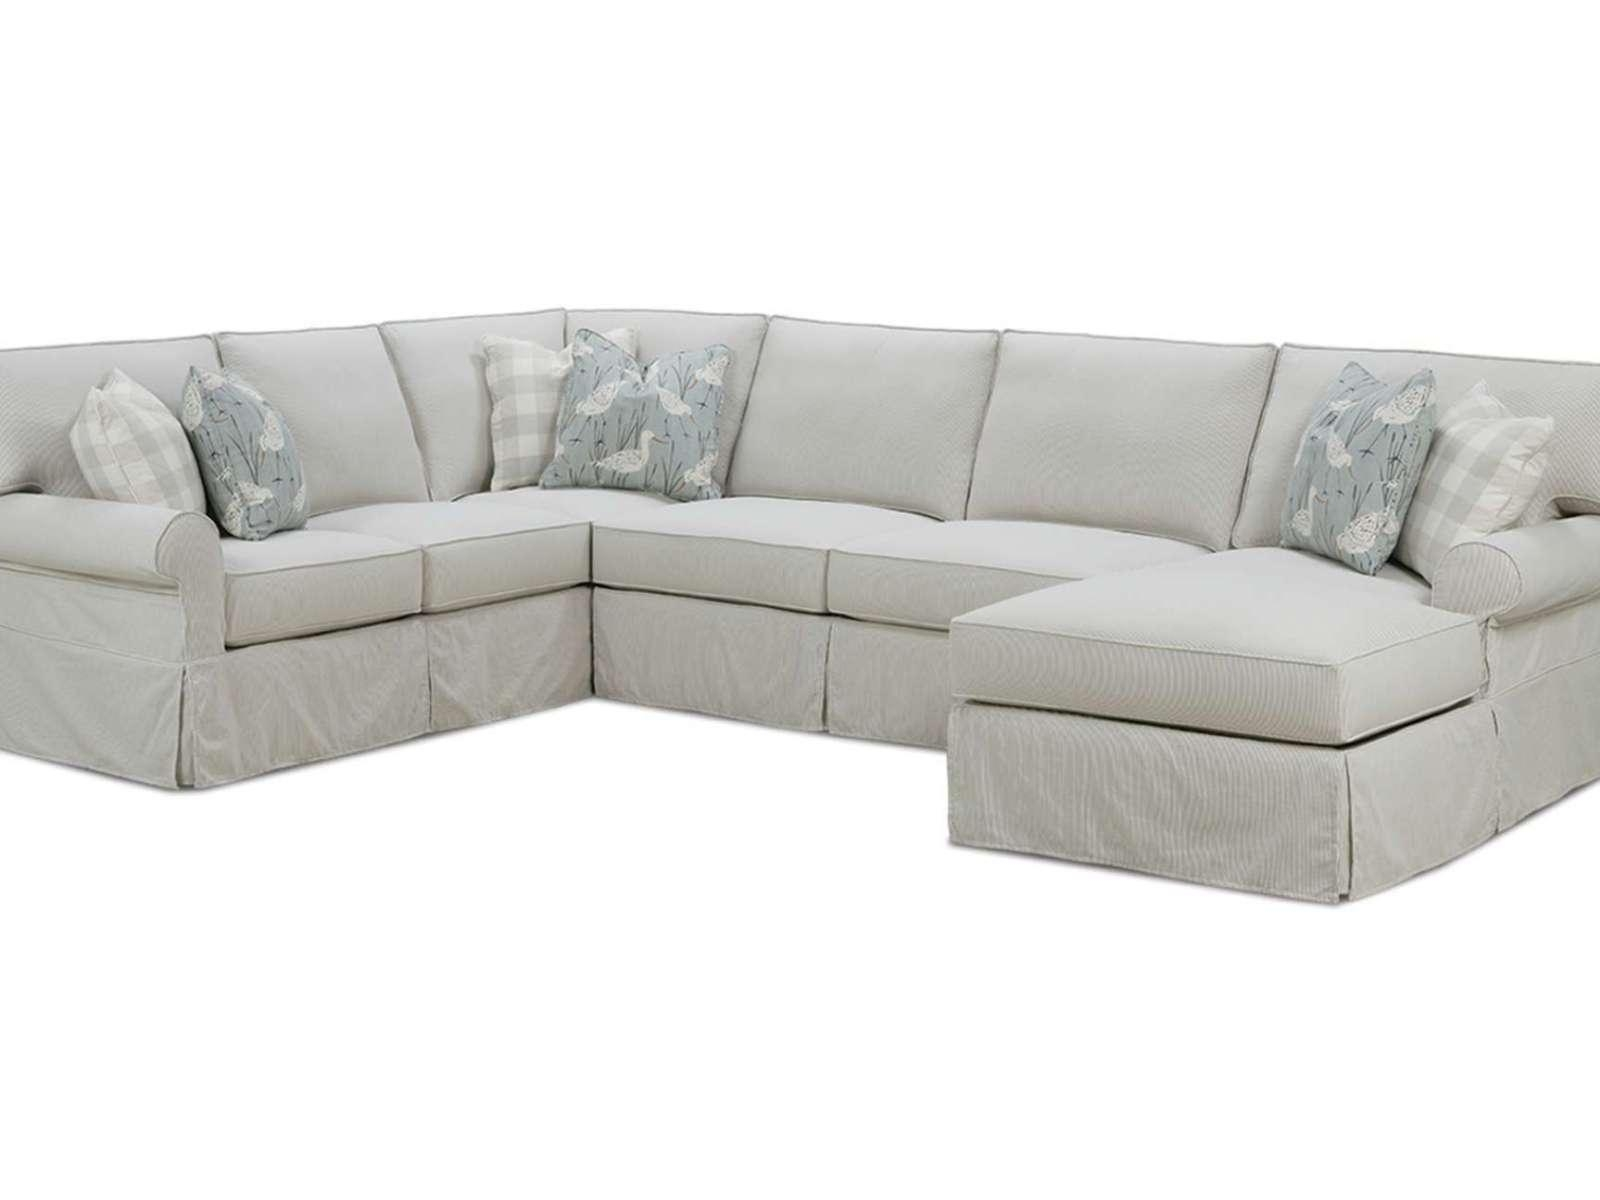 chair covers bed bath and beyond single lounge 20 best ideas 3 piece sectional sofa slipcovers